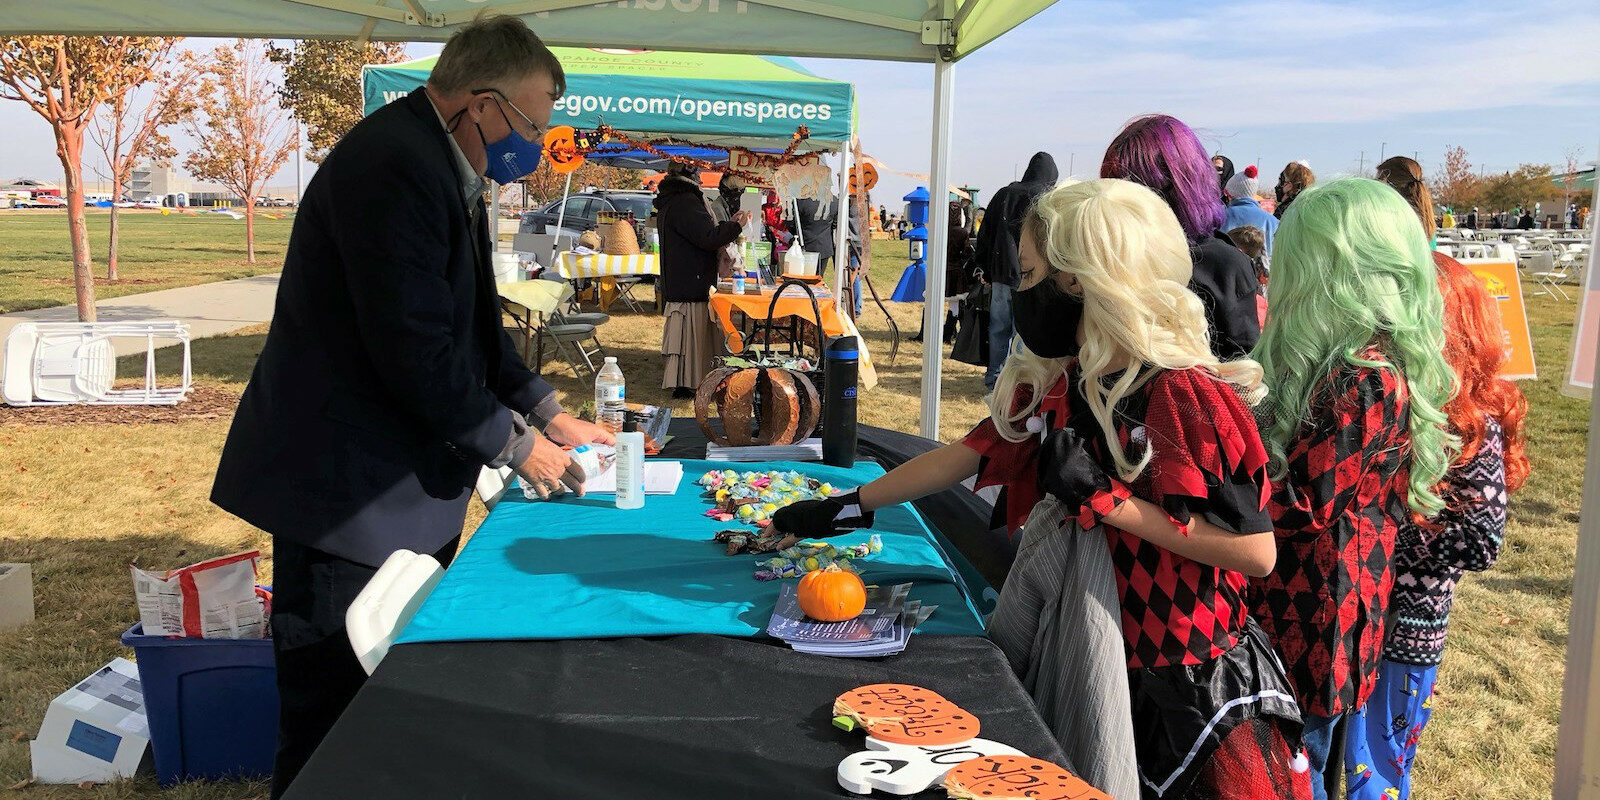 Image of children trick-or-treating at Arapahoe County Fairgrounds in Aurora, Colorado